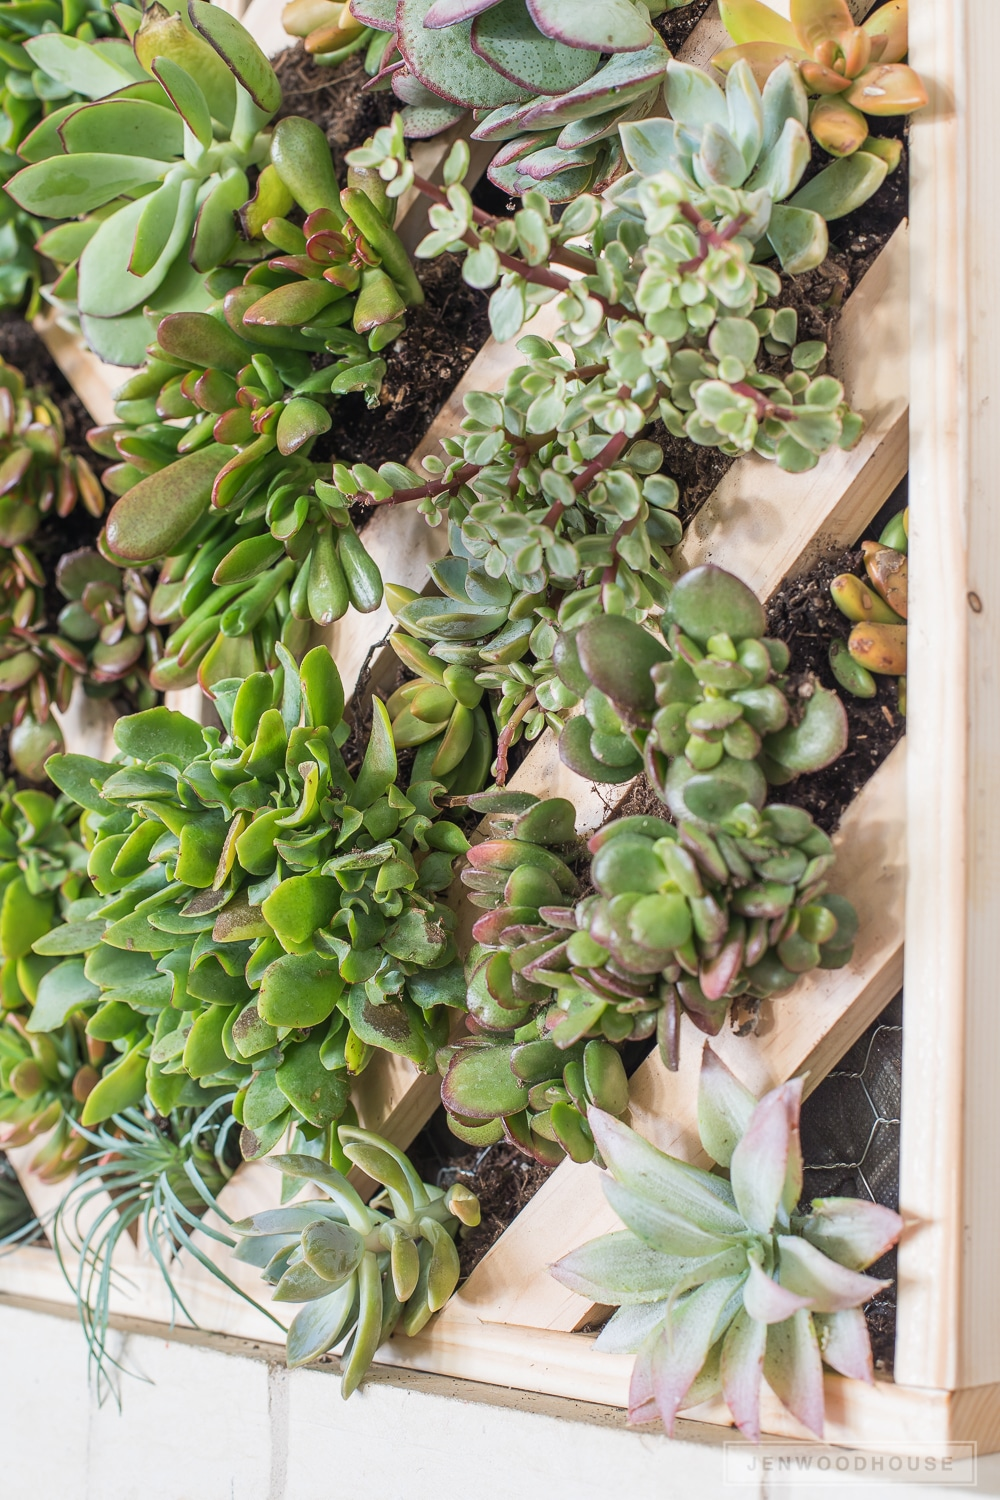 Distinctive How To Make A Vertical Succulent Garden Hanging Succulent Garden Frame Faux Succulent Hanging Garden garden Succulent Hanging Garden